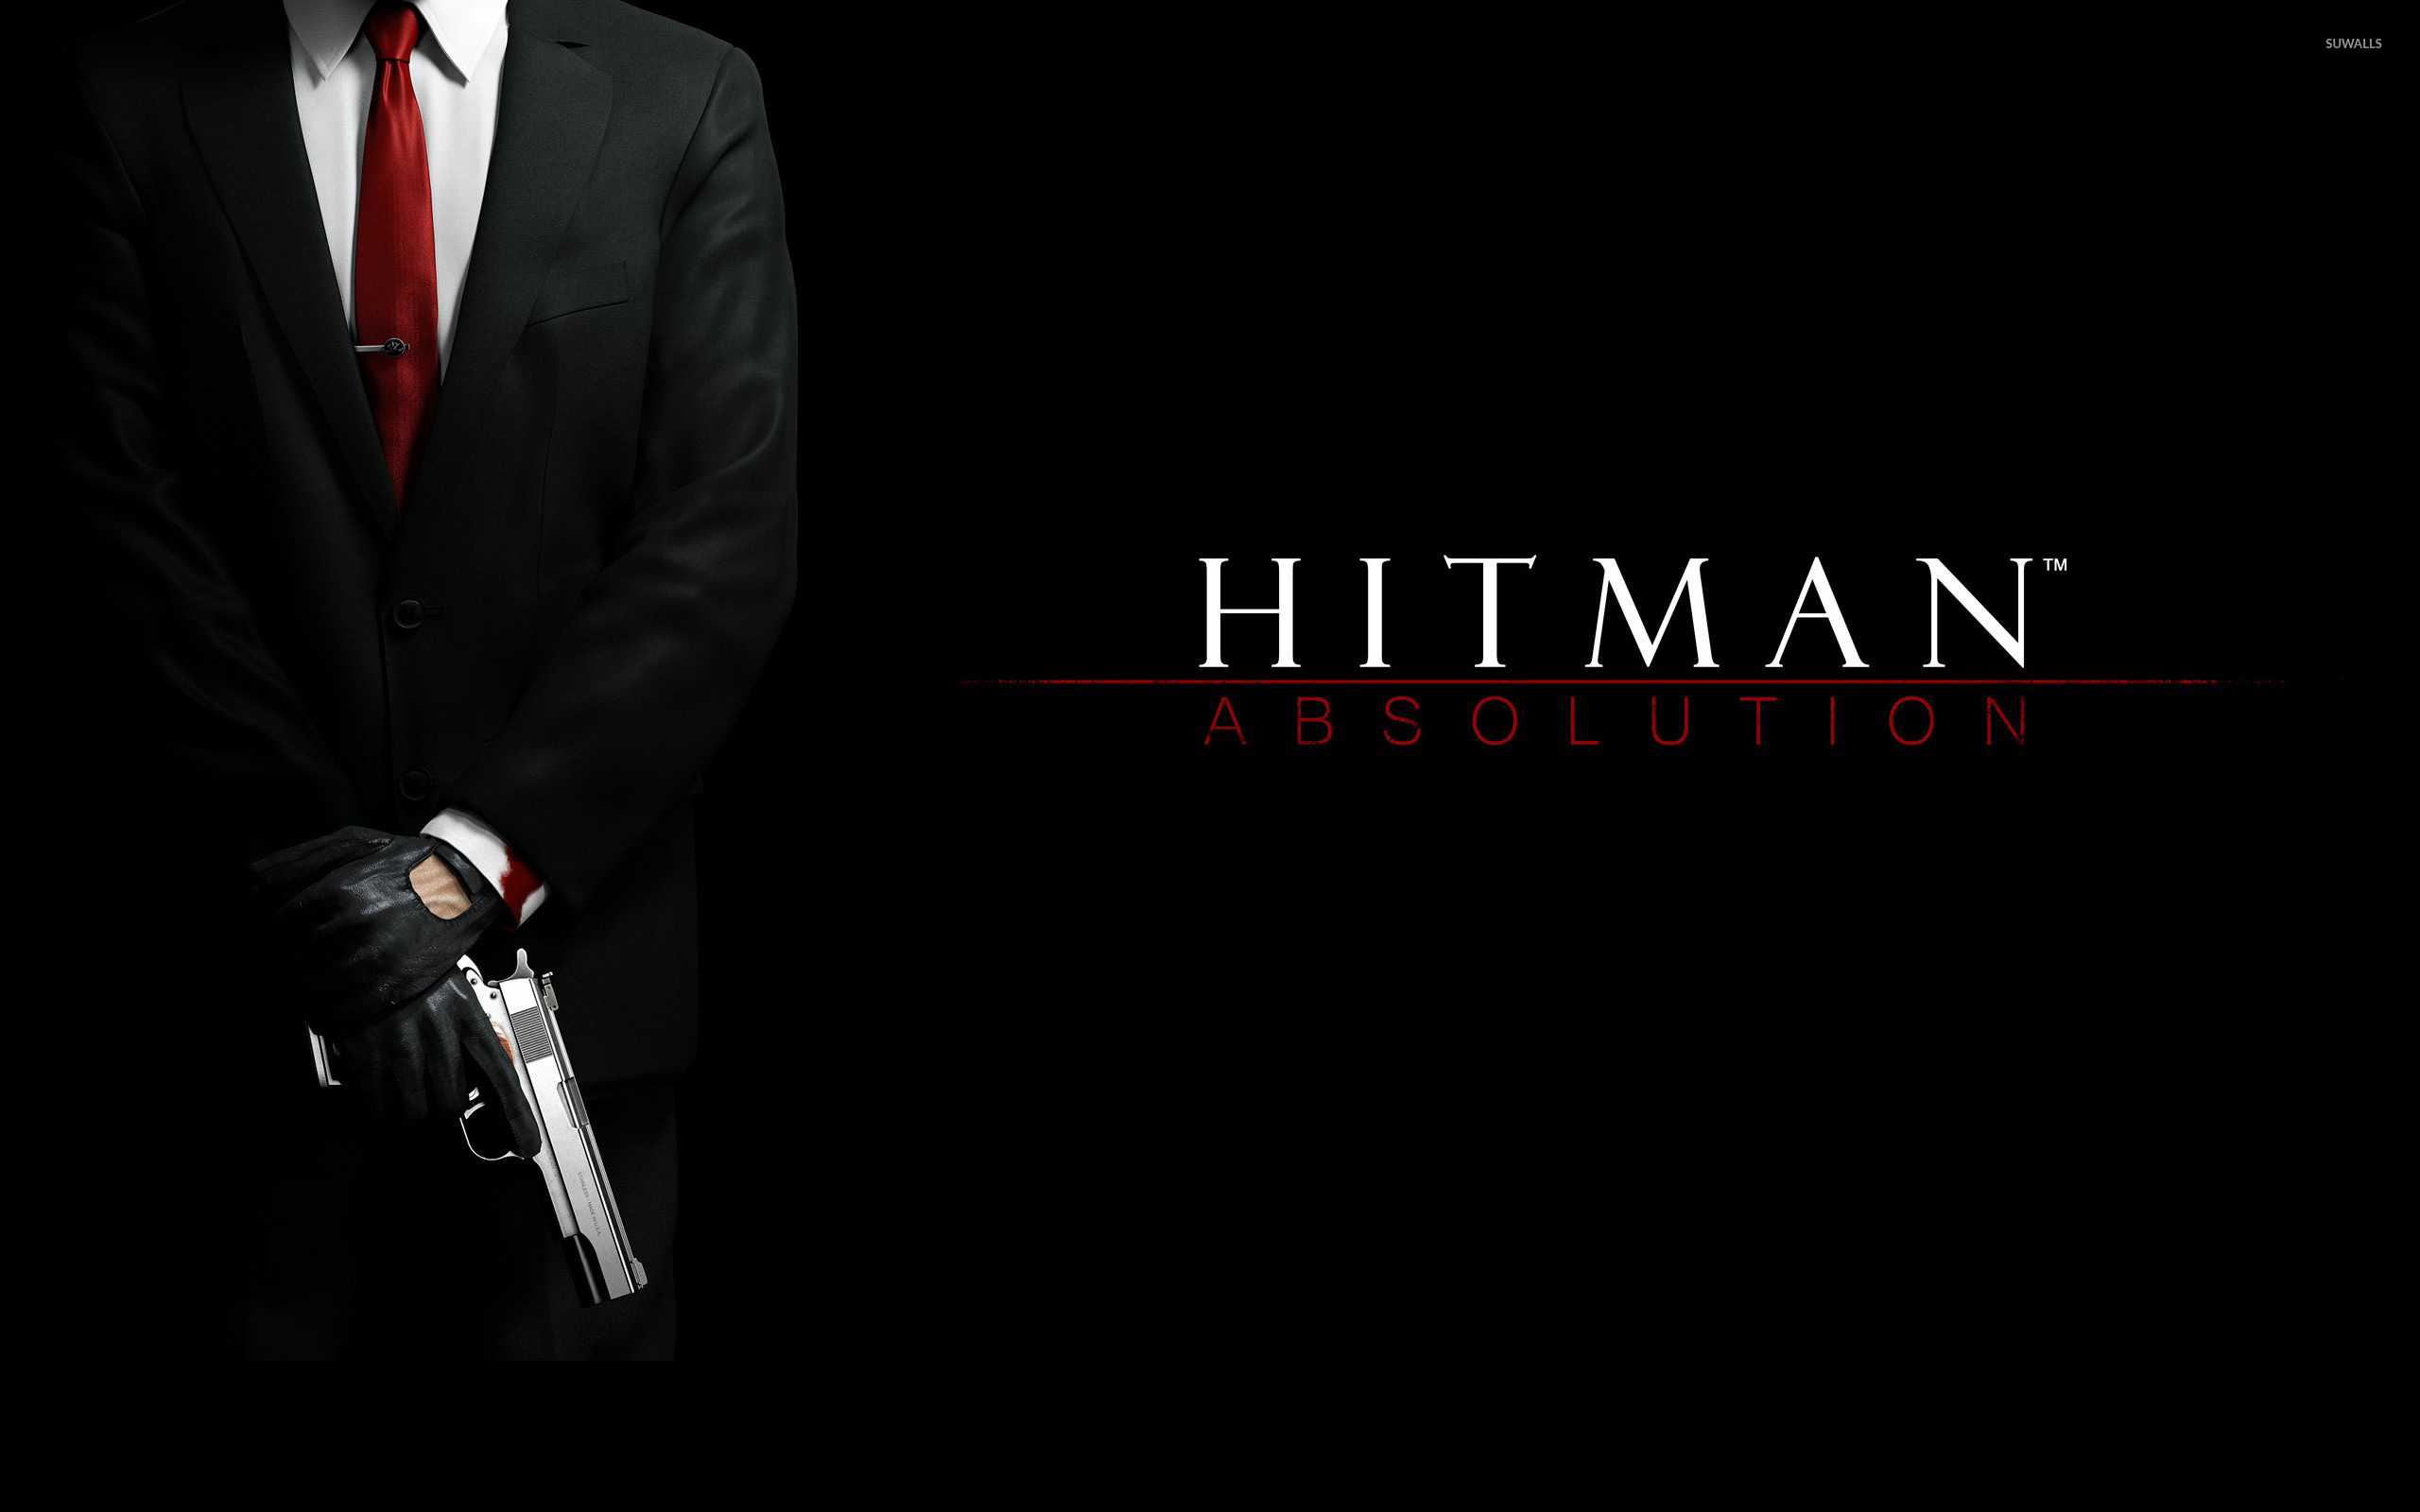 Hitman Absolution Wallpaper Game Wallpapers 7701